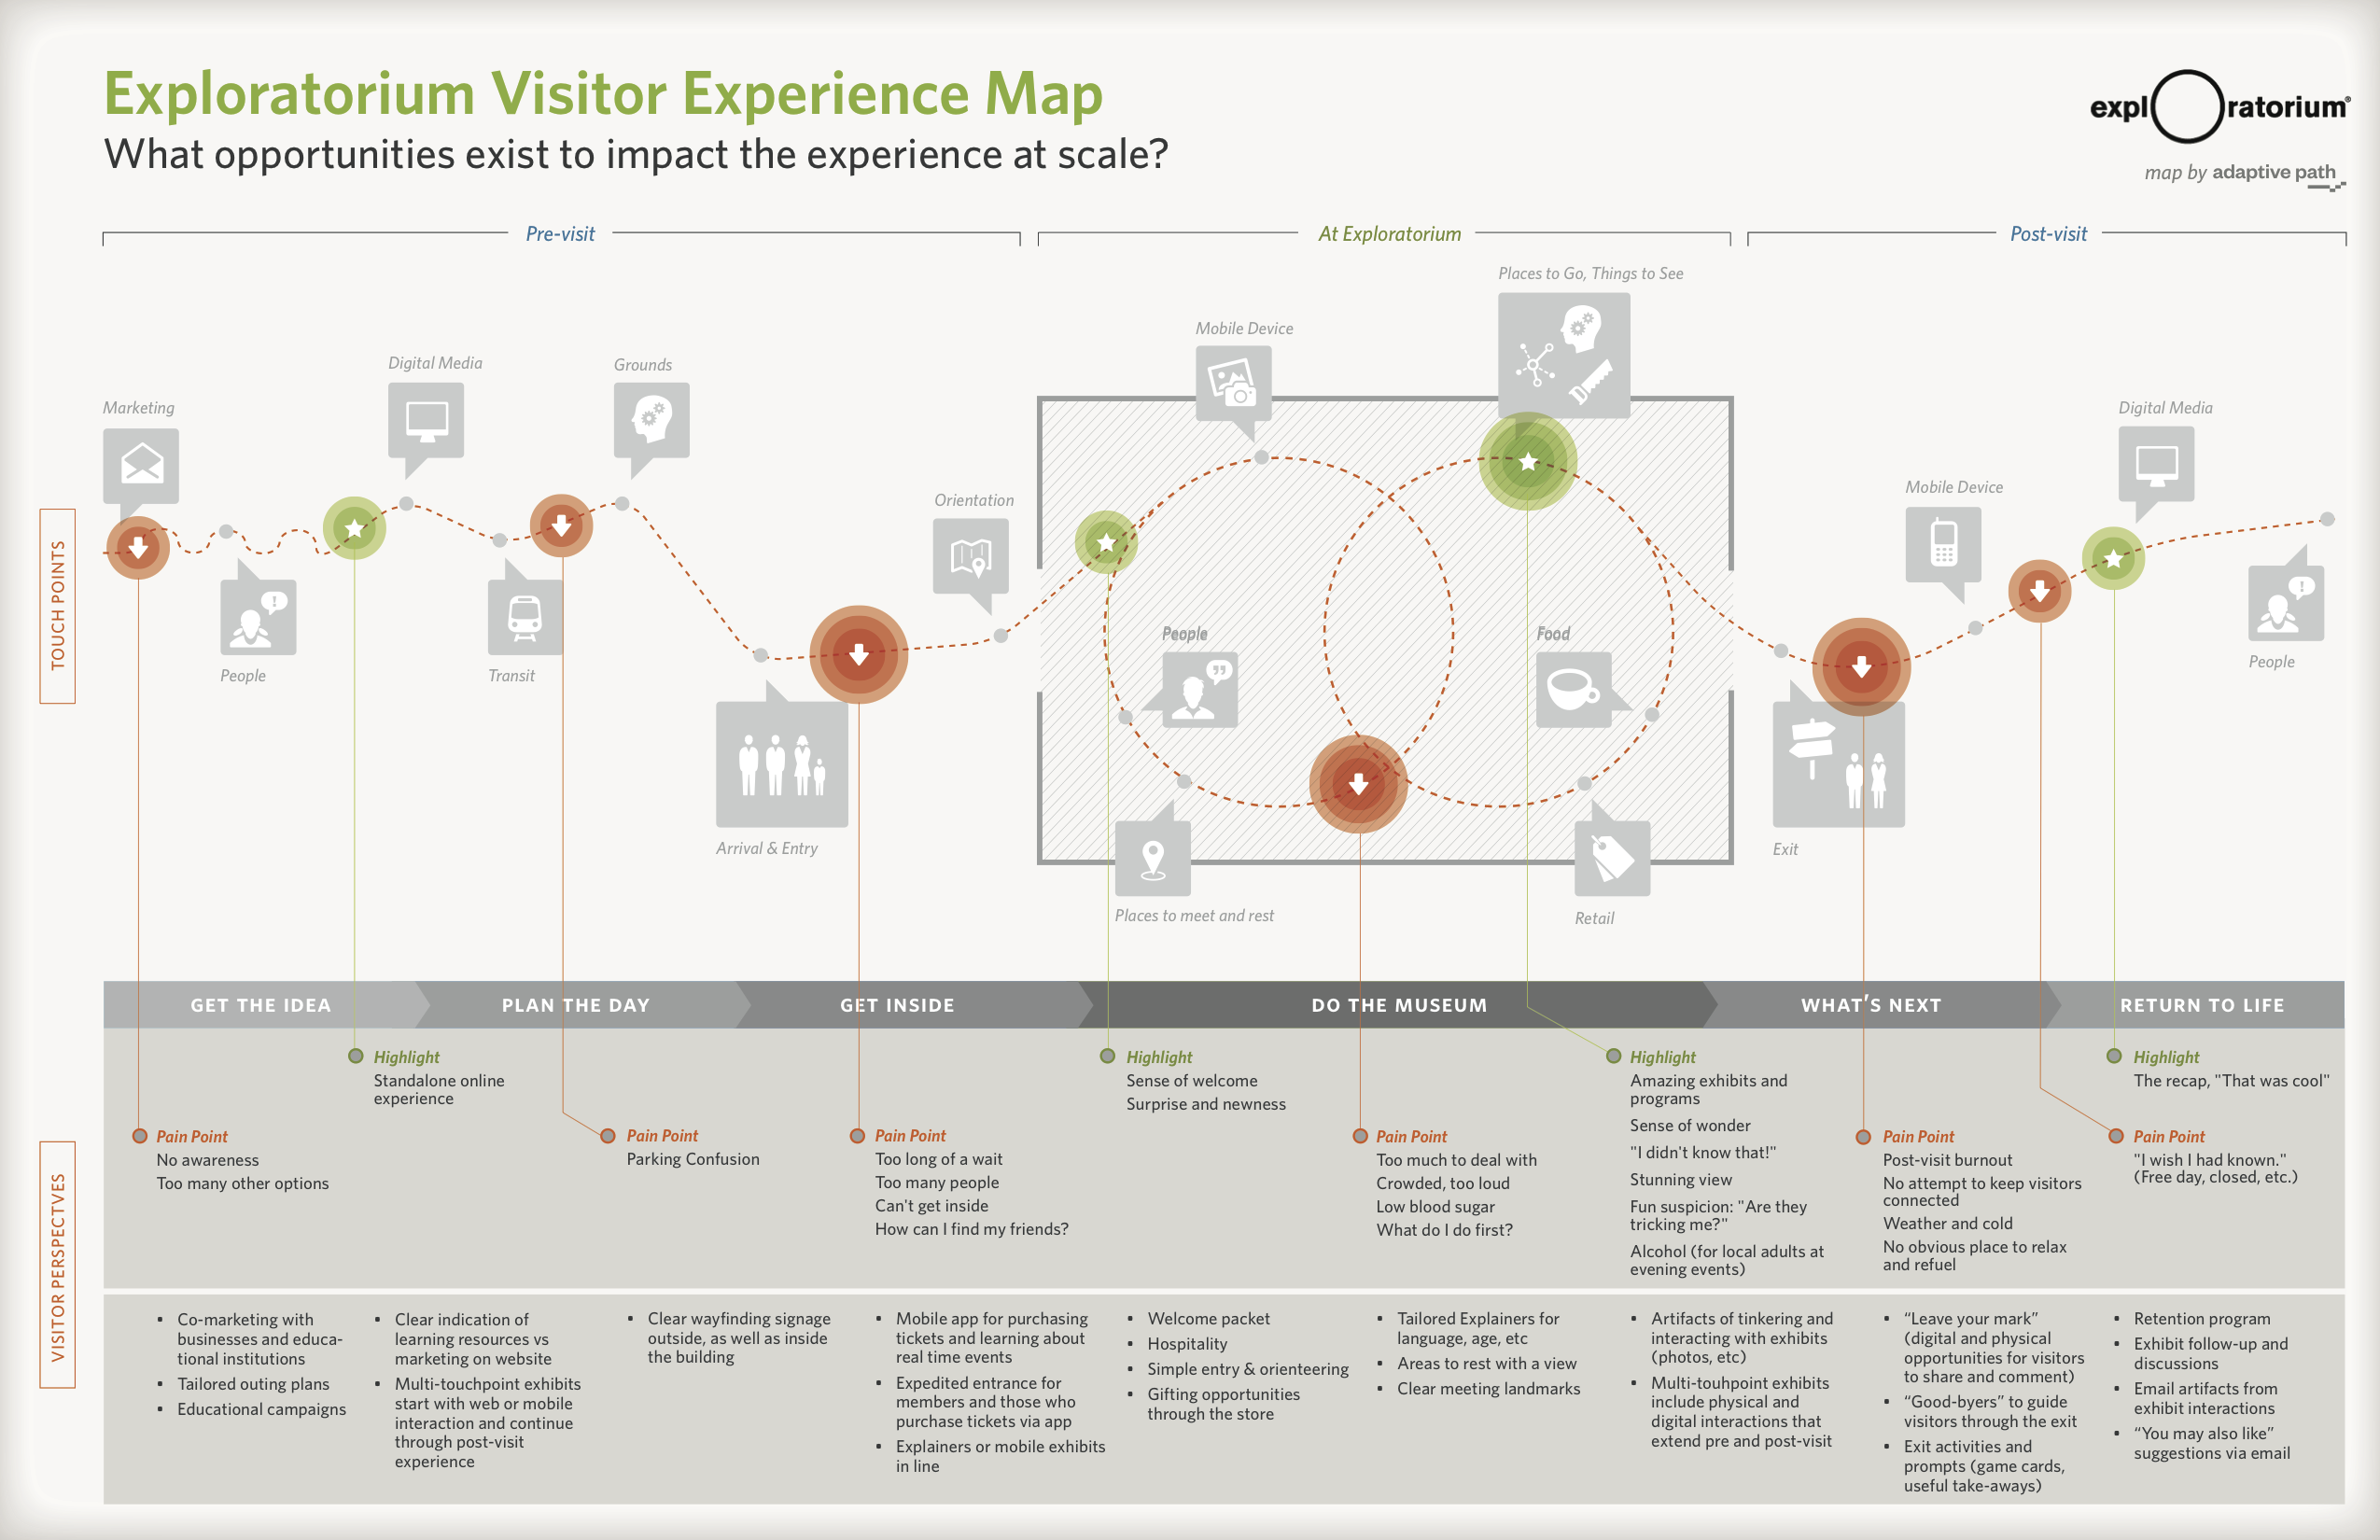 17 Best images about Customer Journey Map on Pinterest | Itunes, A ...